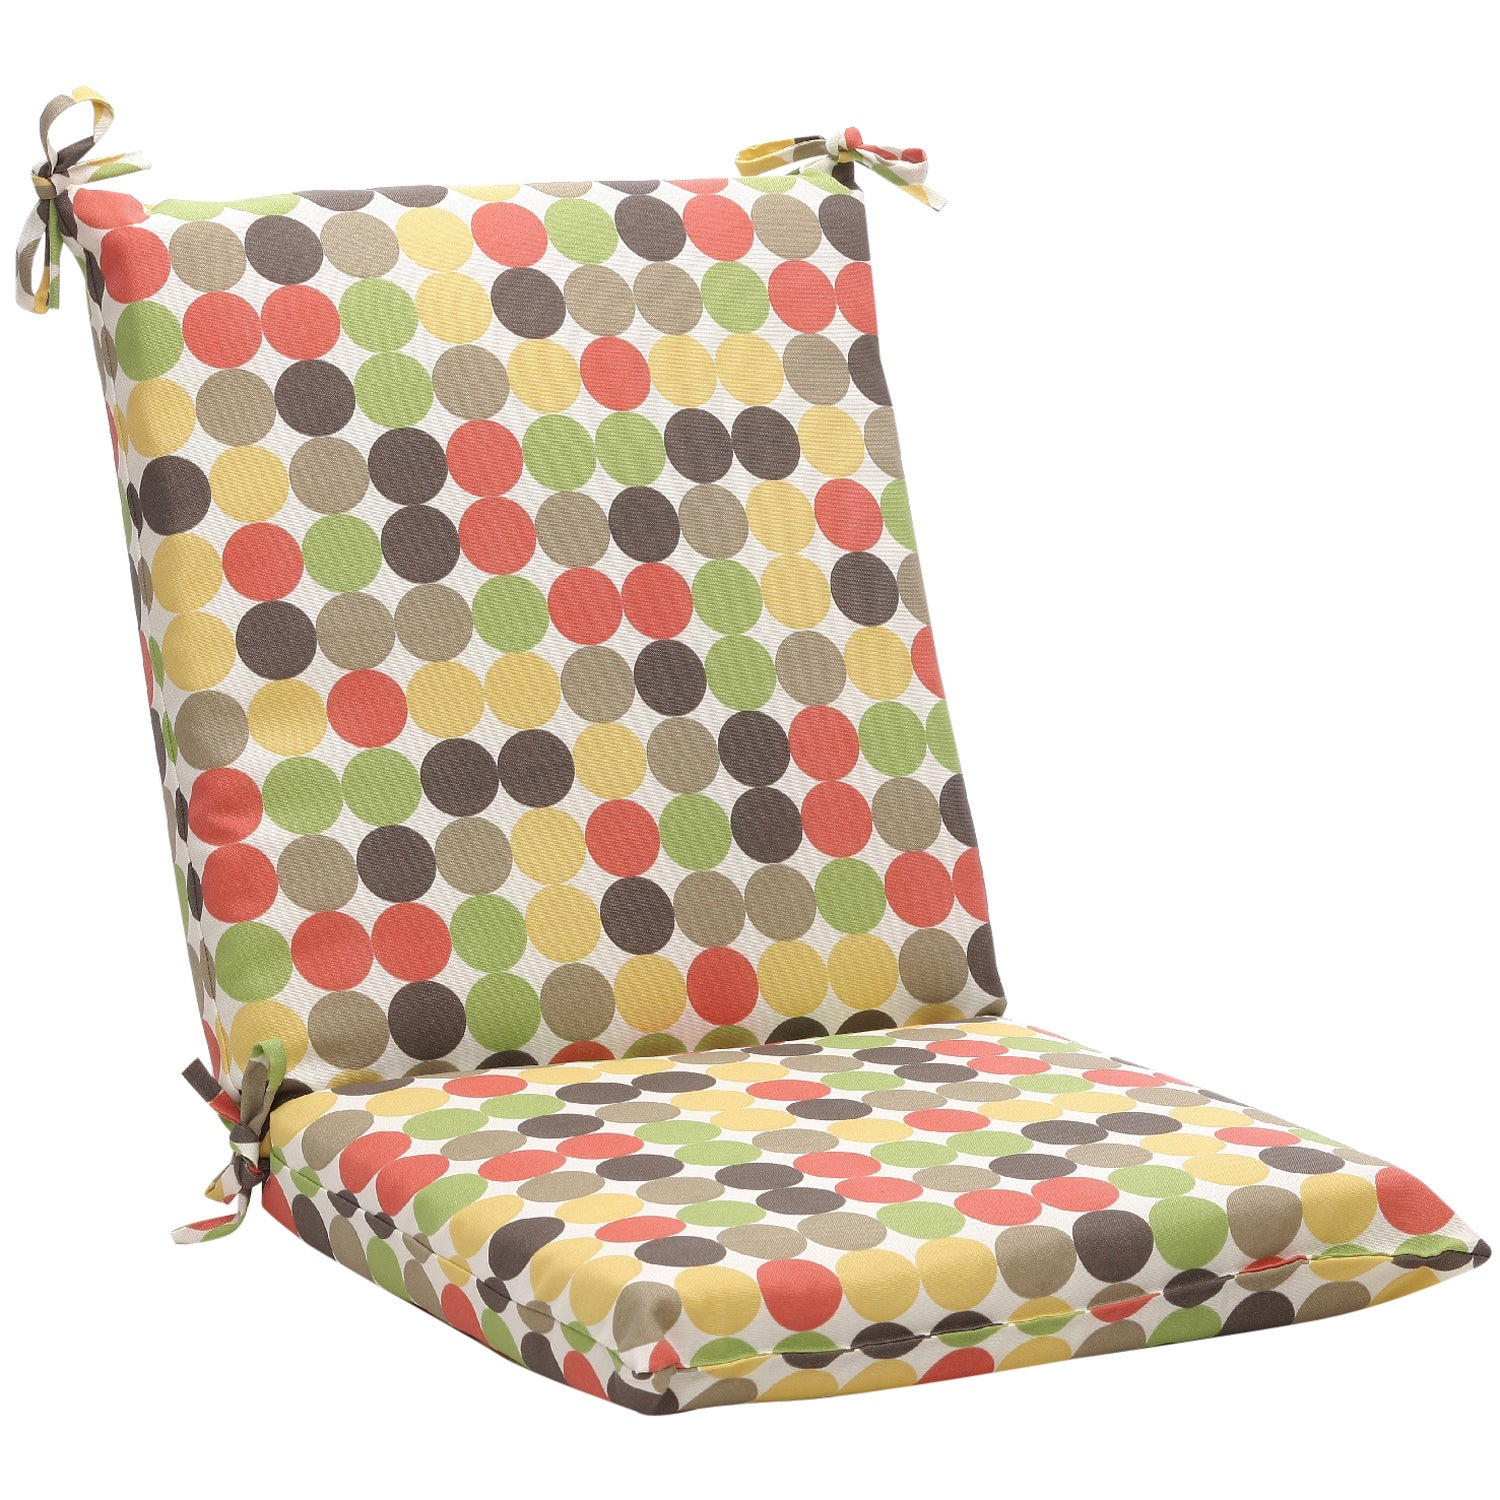 Squared Multicolored Polka Dots Outdoor Chair Cushion  : Squared Multicolored Polka Dots Outdoor Chair Cushion L14095684 from www.overstock.com size 1500 x 1500 jpeg 508kB